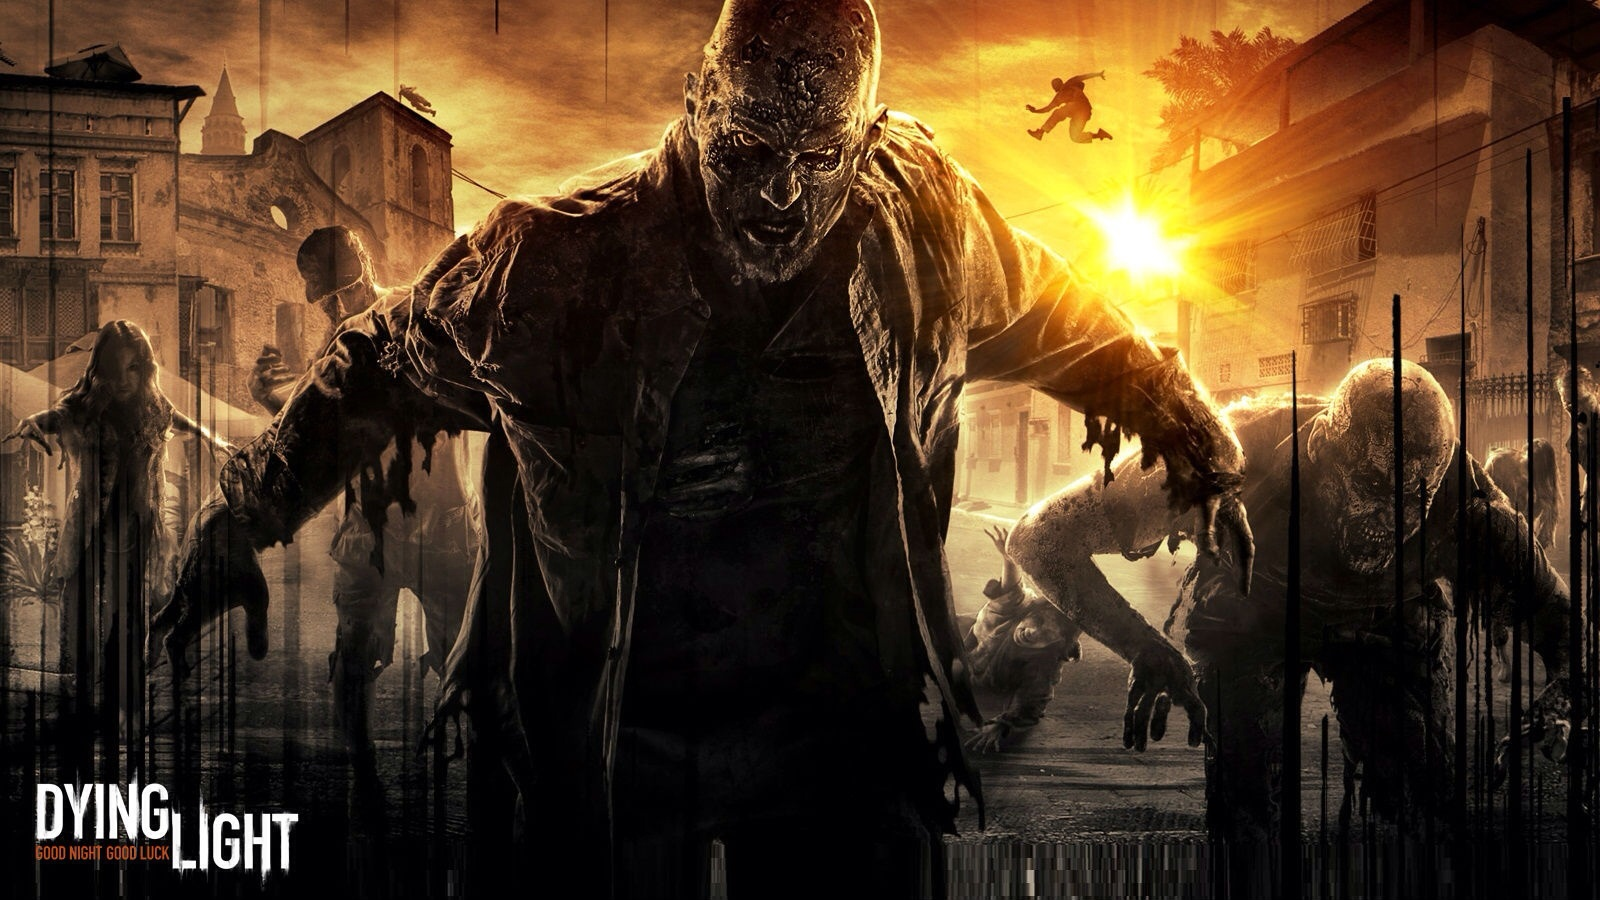 Dying Light Images Dying Light Hd Wallpaper And Background